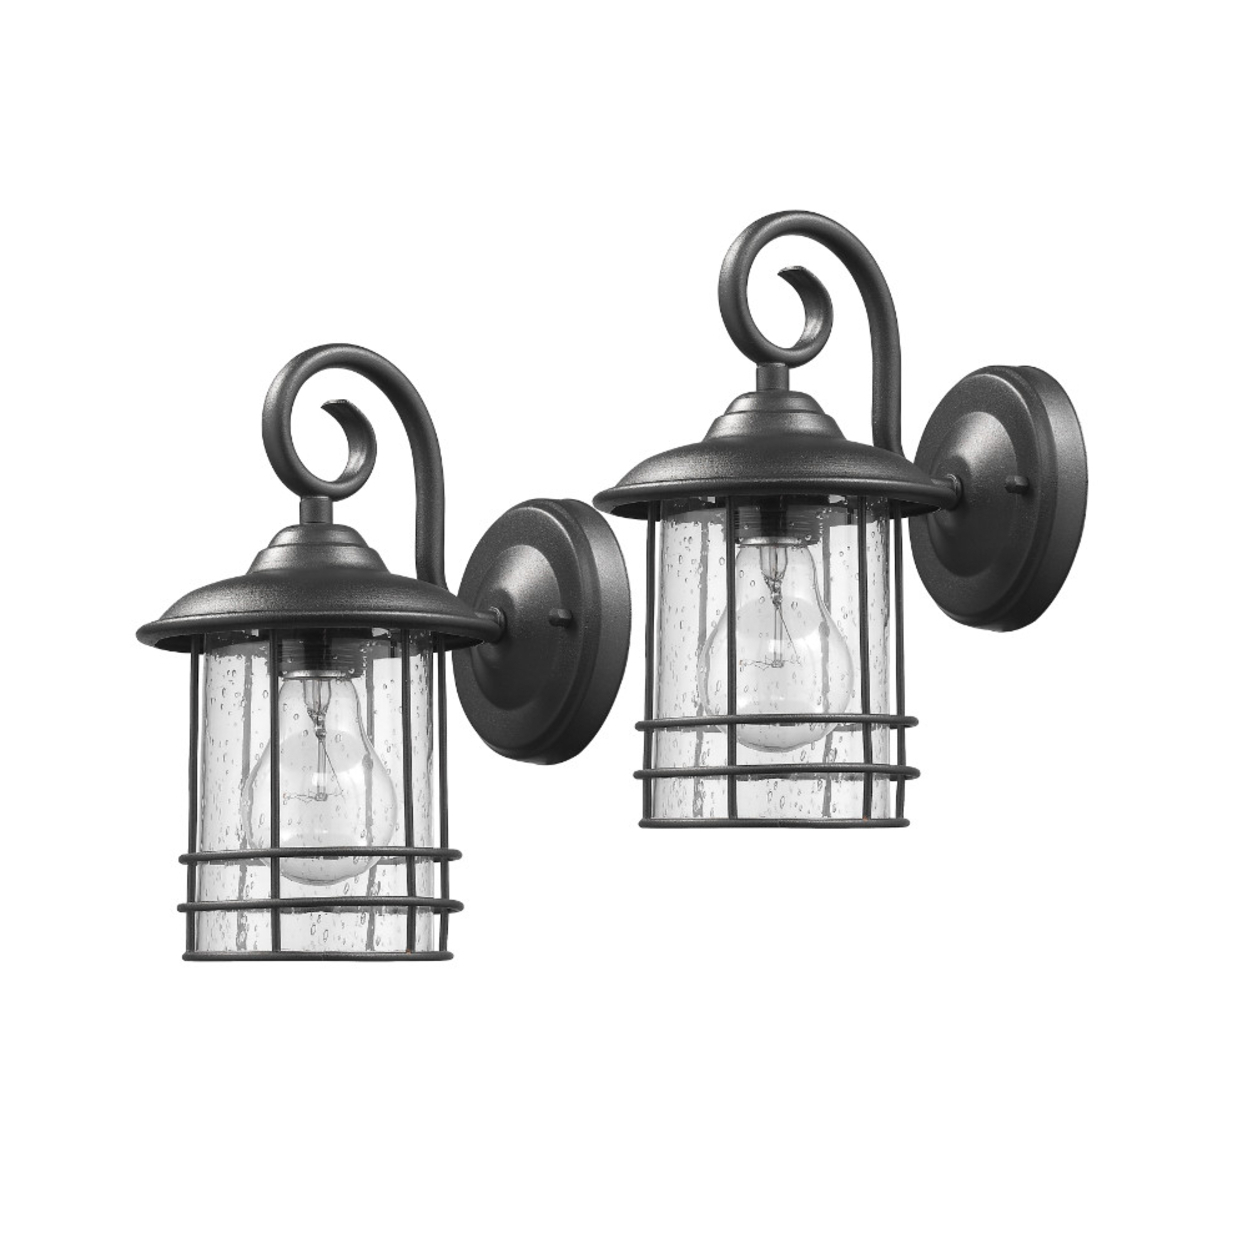 Chloe Lighting Transitional 1 Light Black Outdoor Wall For Most Current Clarence Black 10'' H Outdoor Wall Lanterns (View 14 of 15)